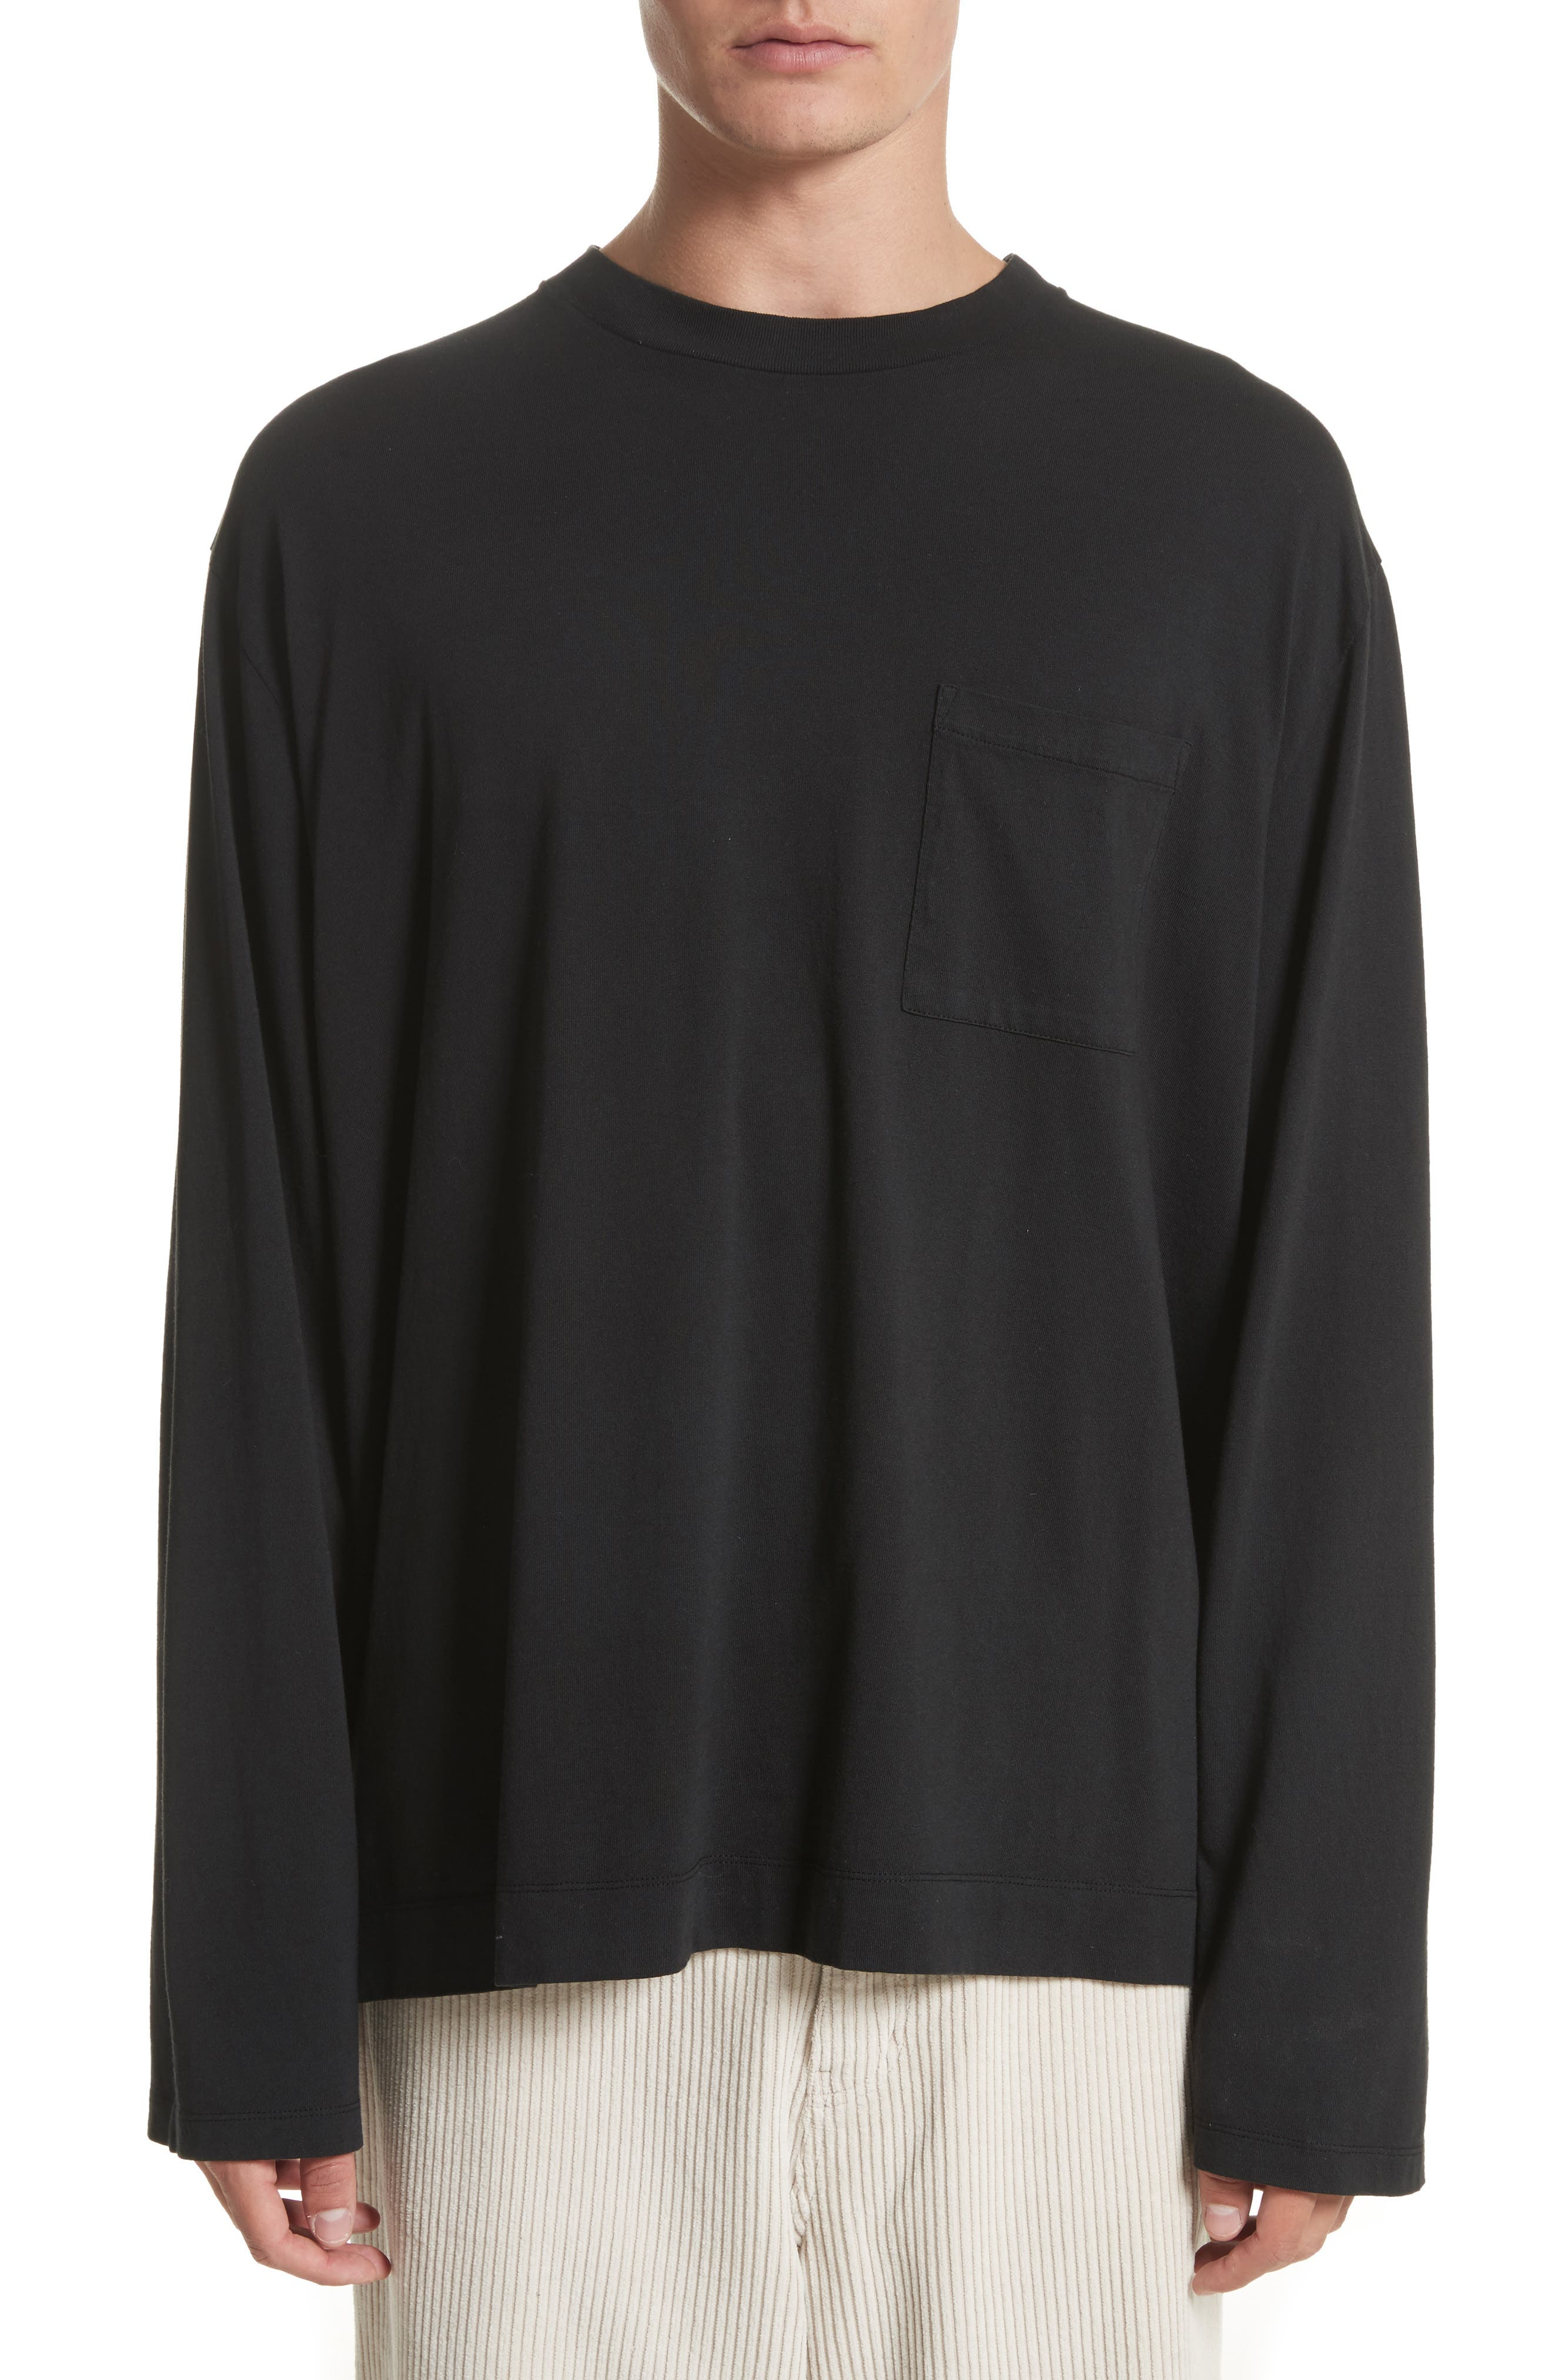 Alternate Image 1 Selected - OUR LEGACY Long Sleeve Pocket T-Shirt